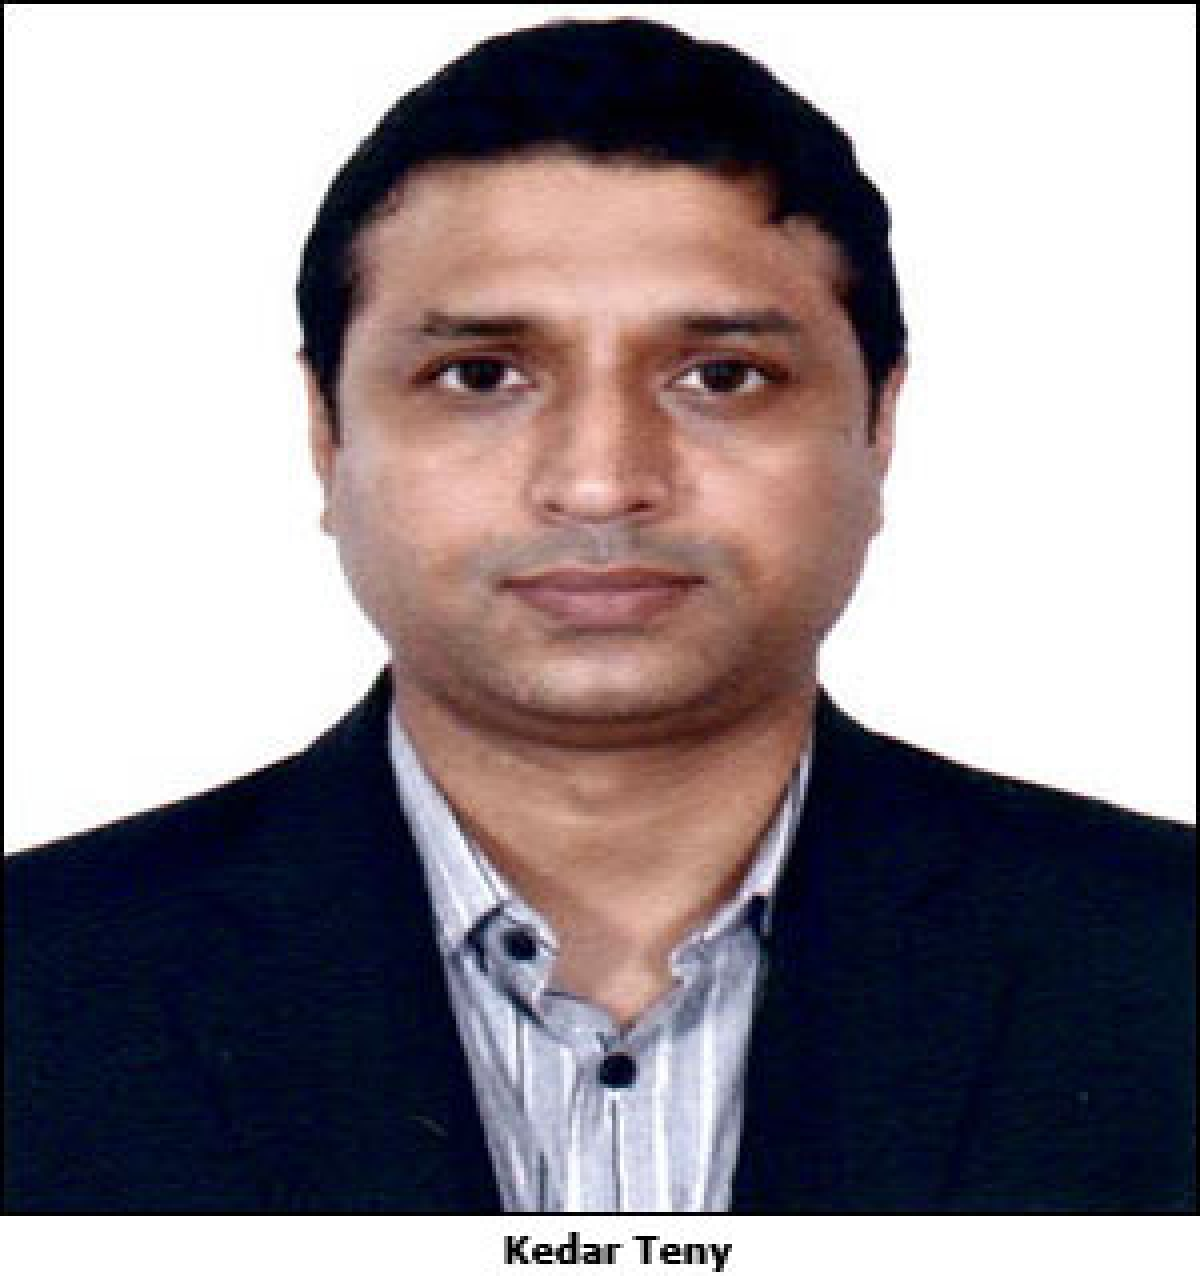 McDonald's India (West & South) appoints Kedar Teny as Director - Marketing & Digital